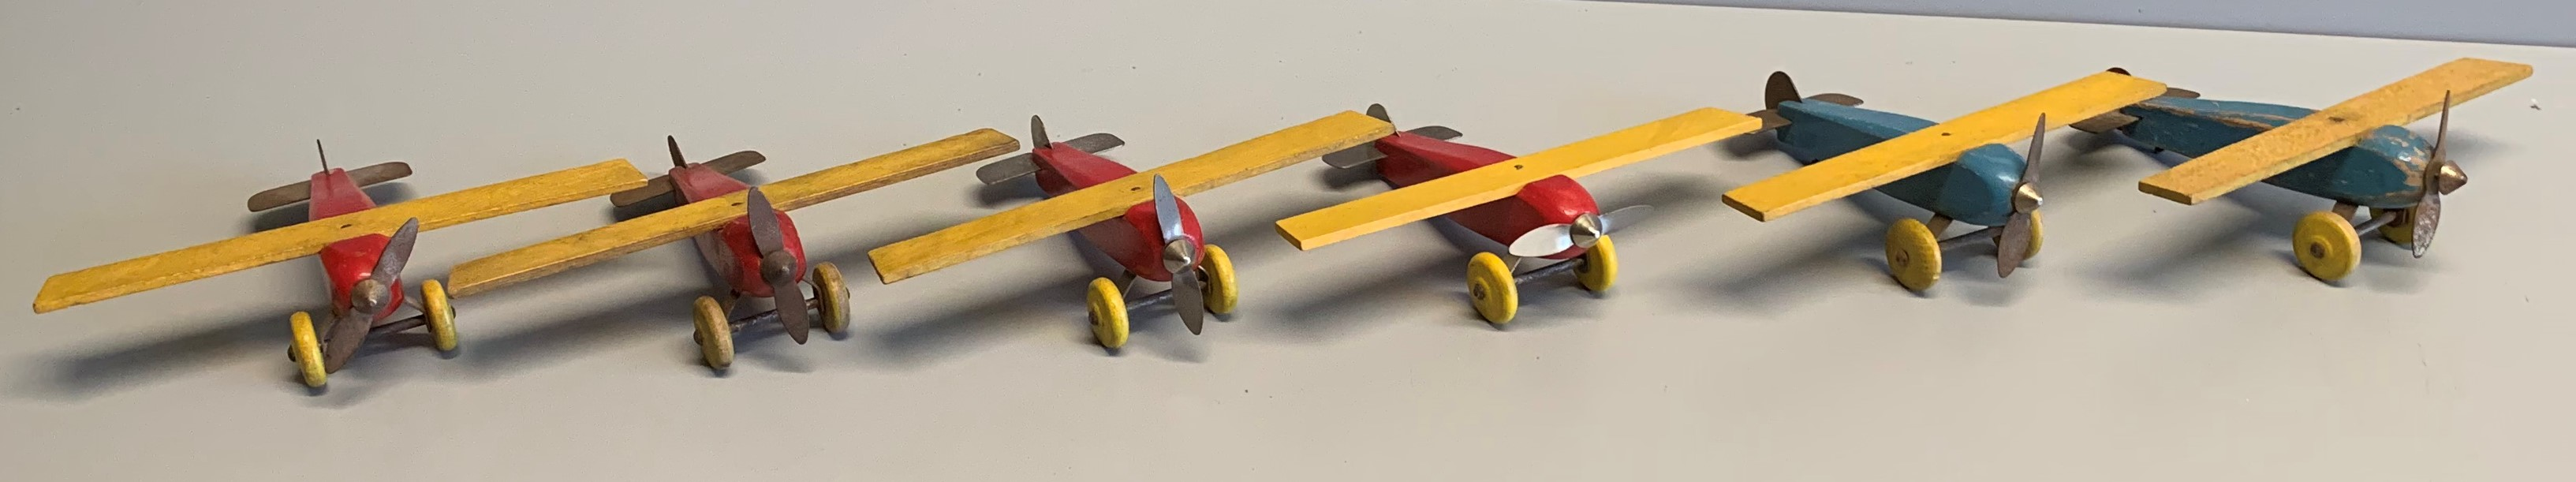 Strombecker Airplanes